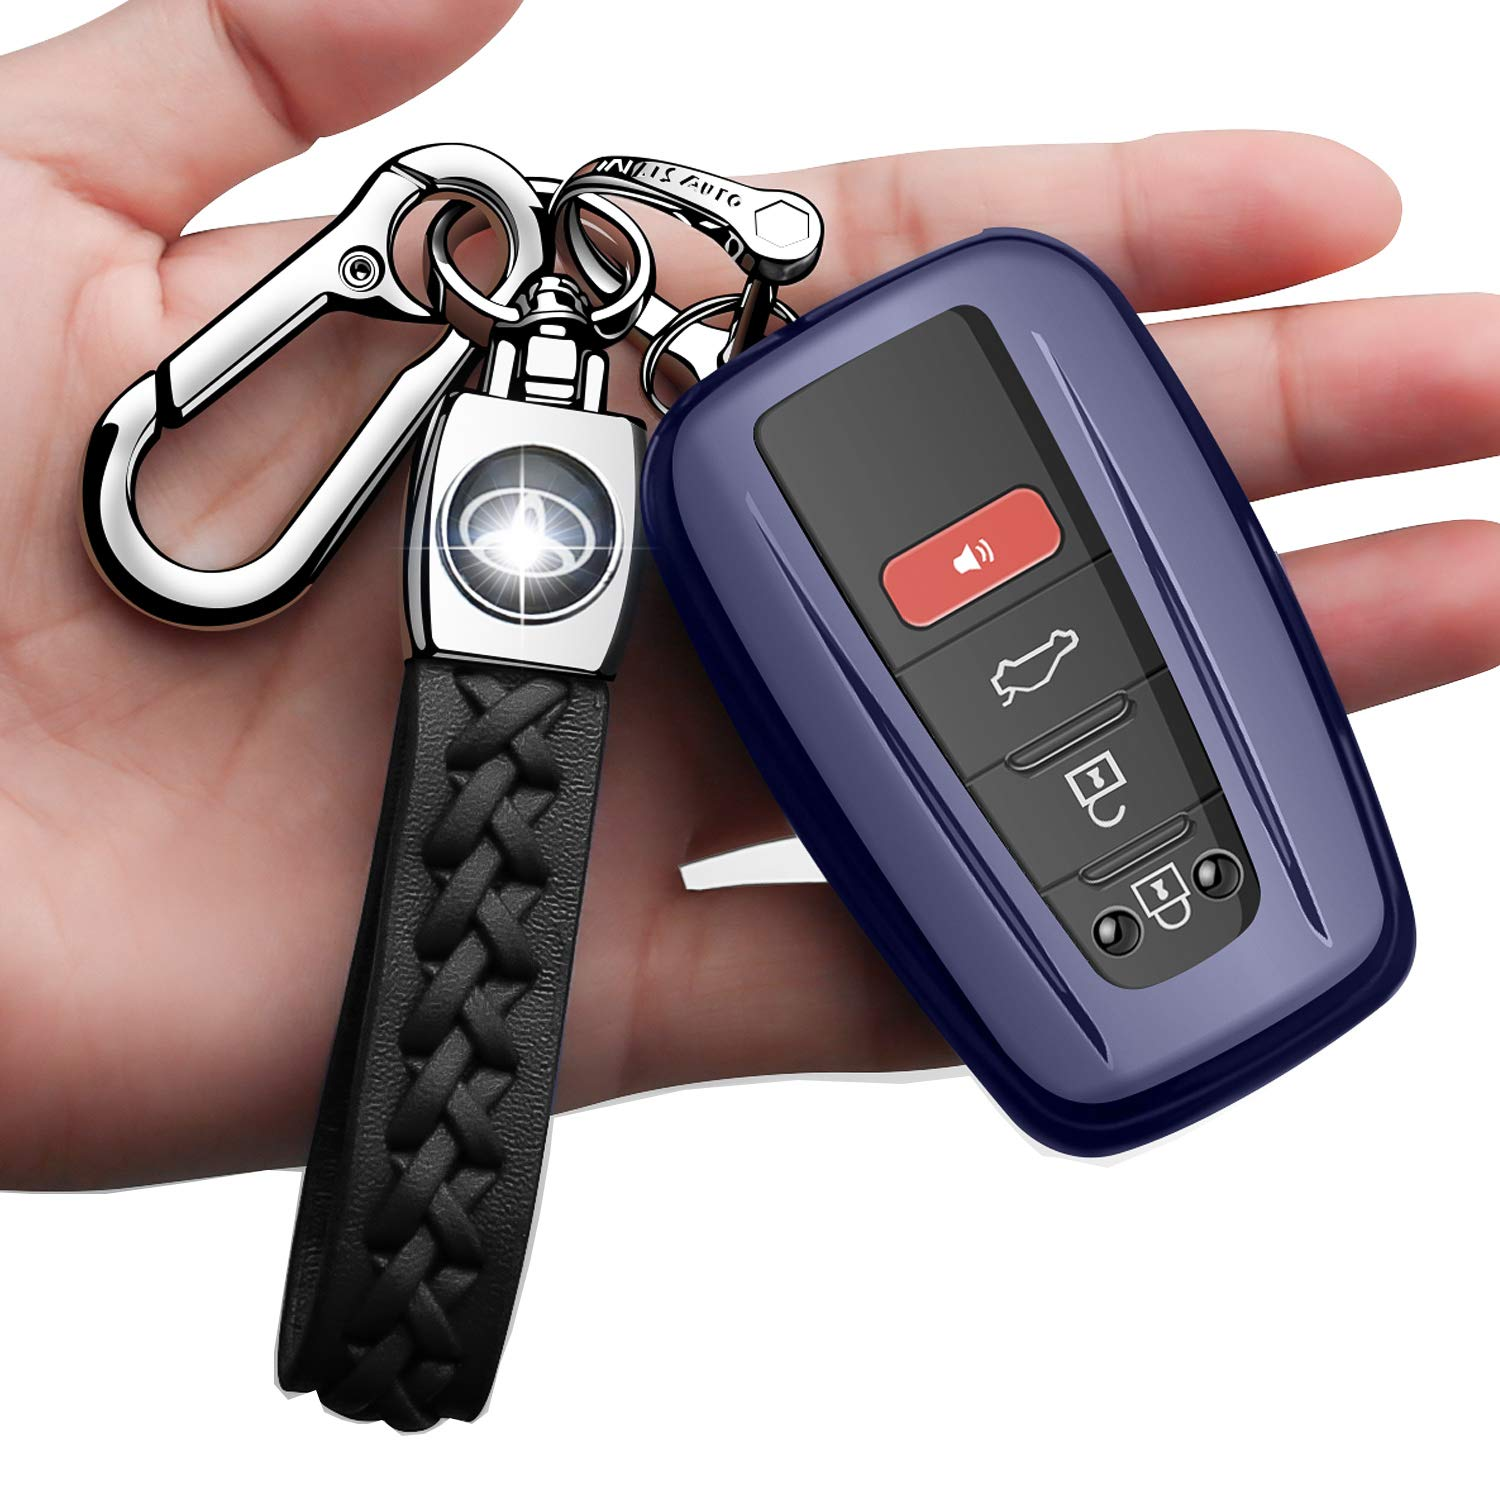 Autophone for Toyota Key Fob Cover with Keychain,Premium Soft TPU 360 Degree Protection Key Case Compatible with Toyota Highlander RAV4 Camry Corolla Avalon Tocoma Tundra Smart Key,Silver